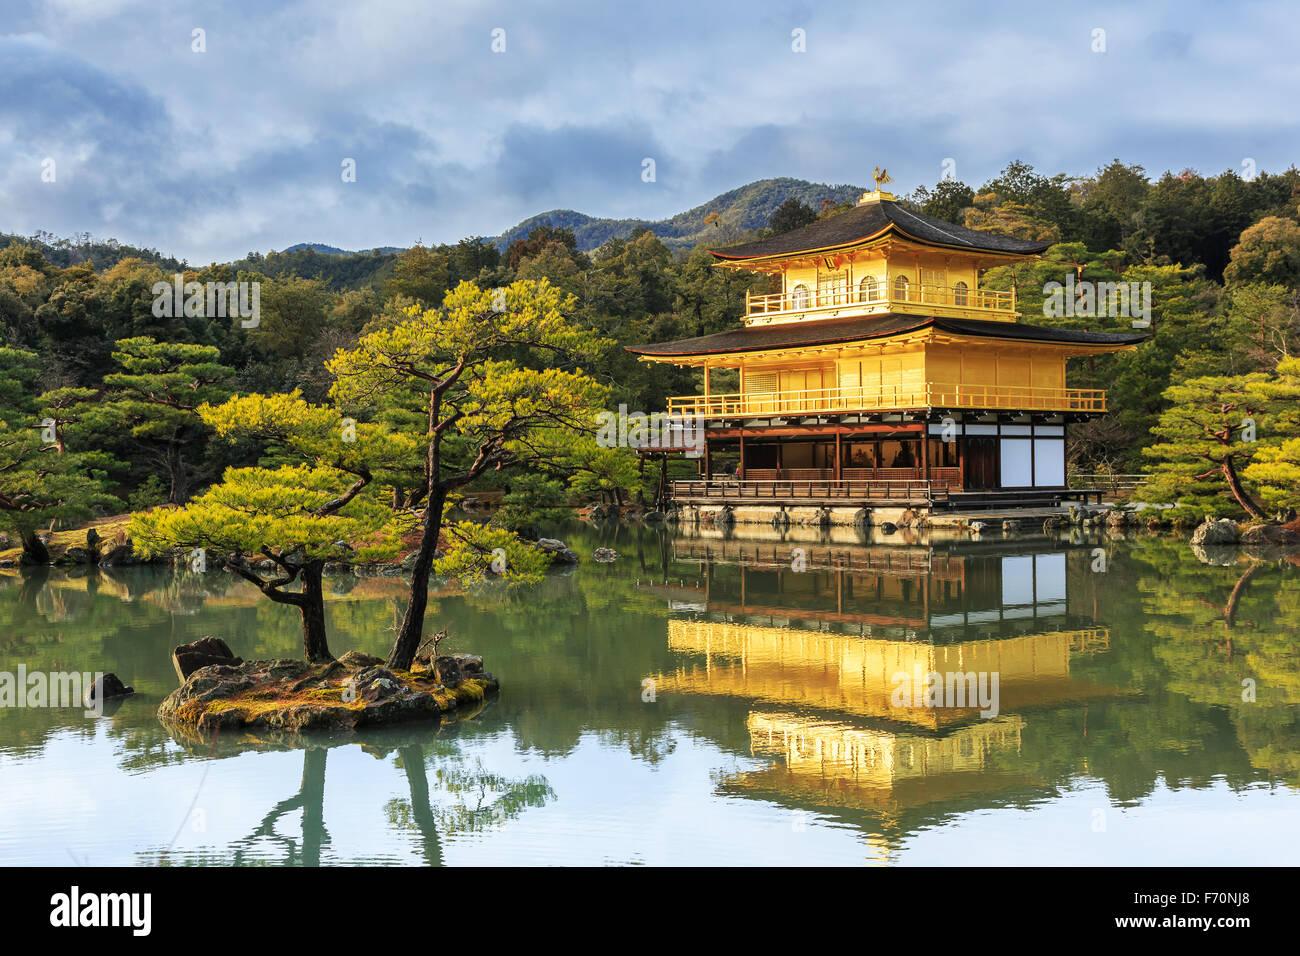 Le pavillon d'Or Temple Kinkakuji à Kyoto, Japon Photo Stock